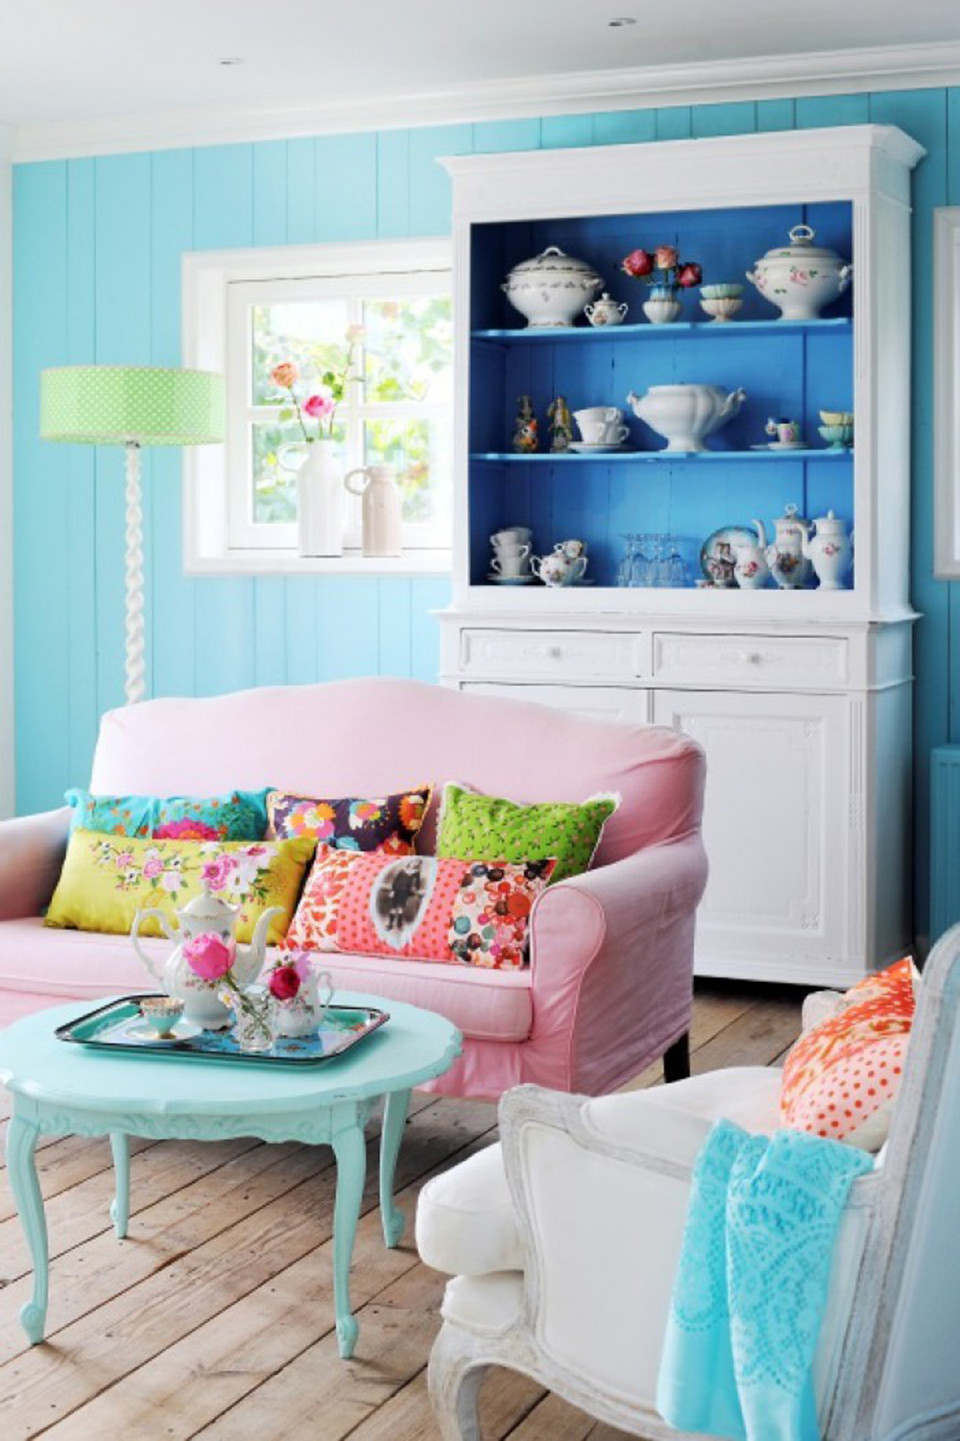 Cozy Living Room Ideas For Small Spaces: 50 Best Small Living Room Design Ideas For 2017